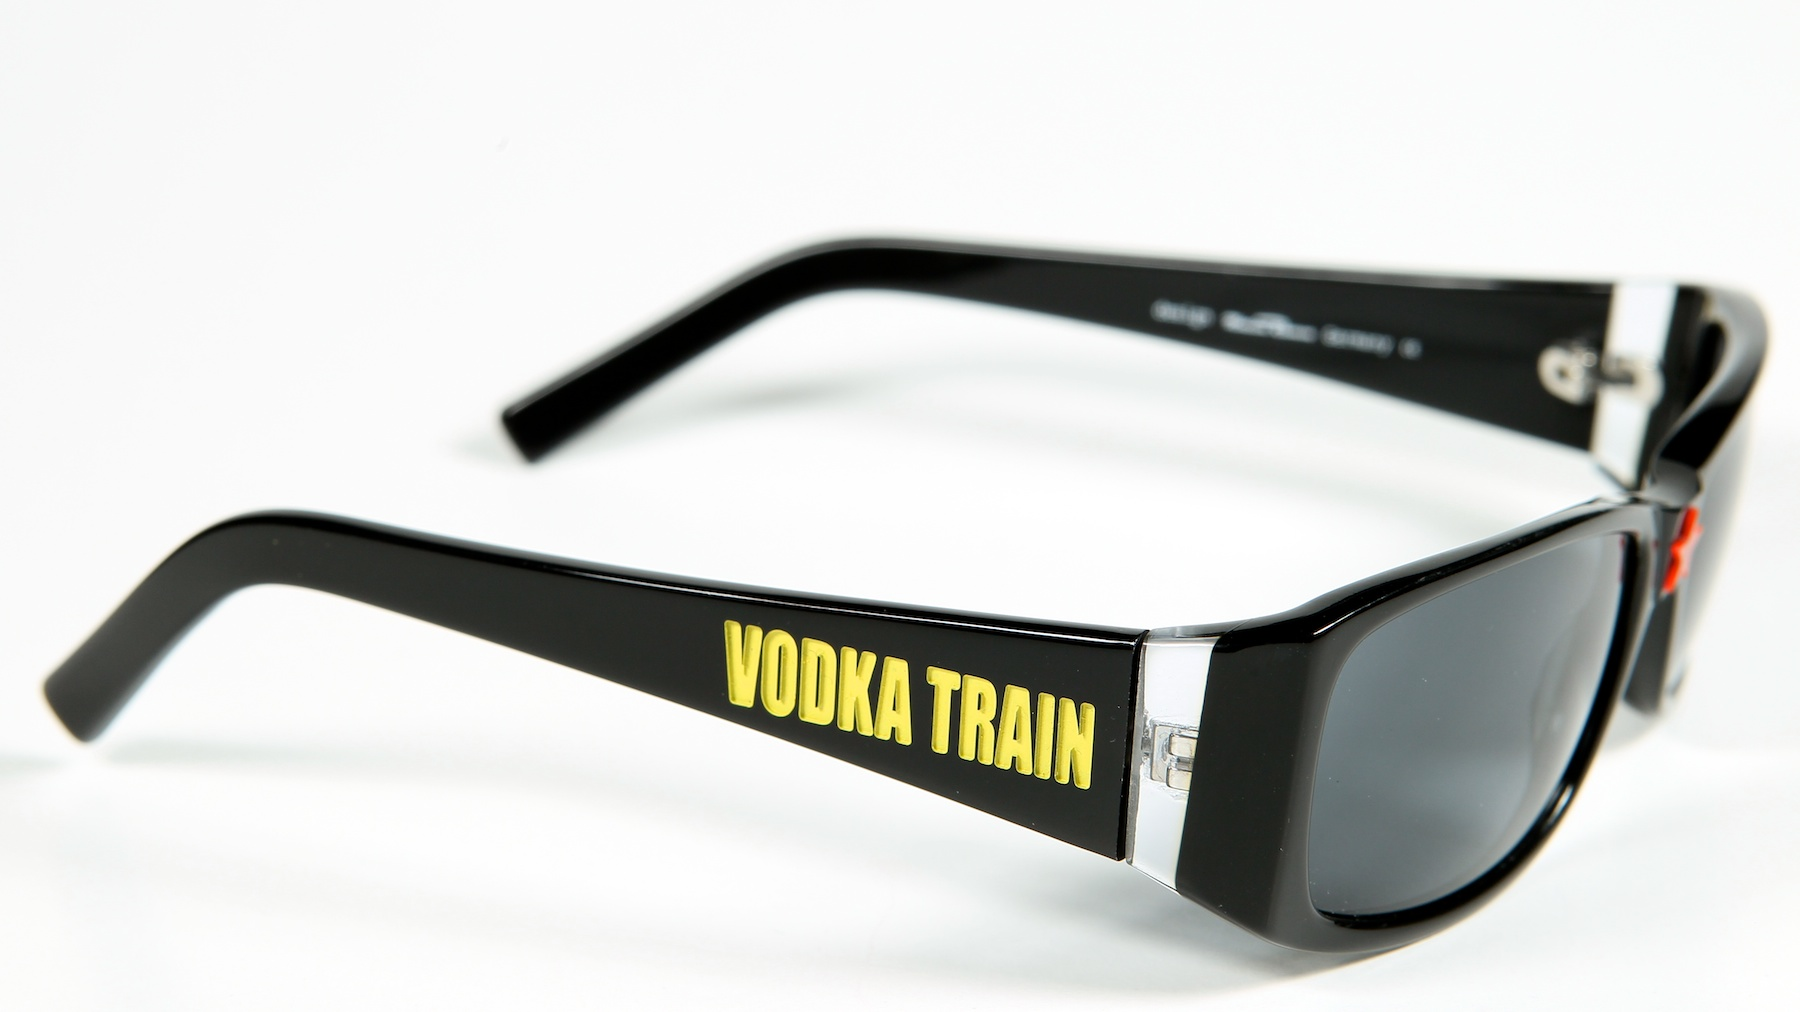 Vodkatrain Sunglasses_012